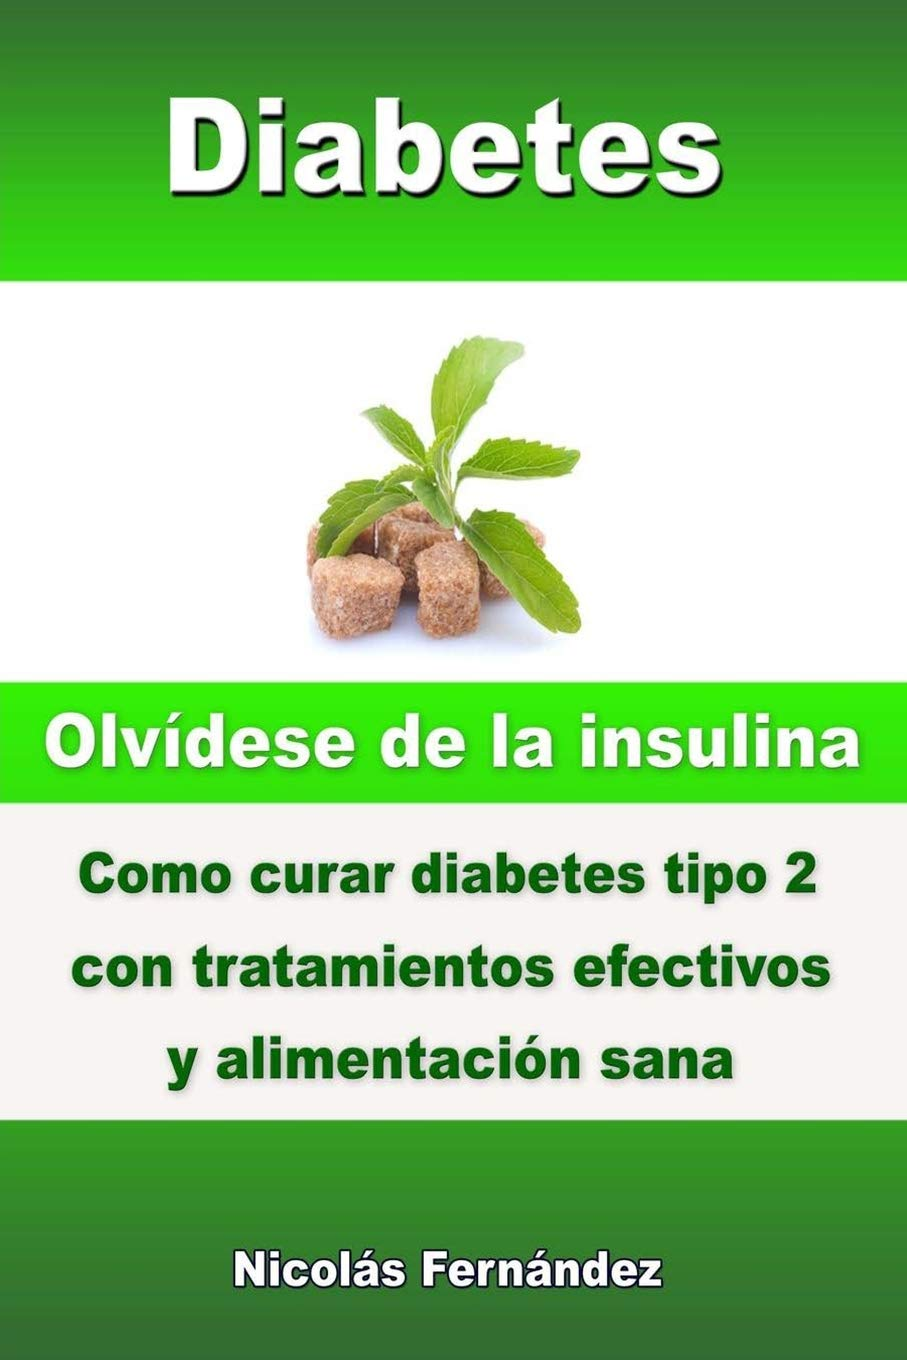 insulinoterapia diabetes mellitus 2